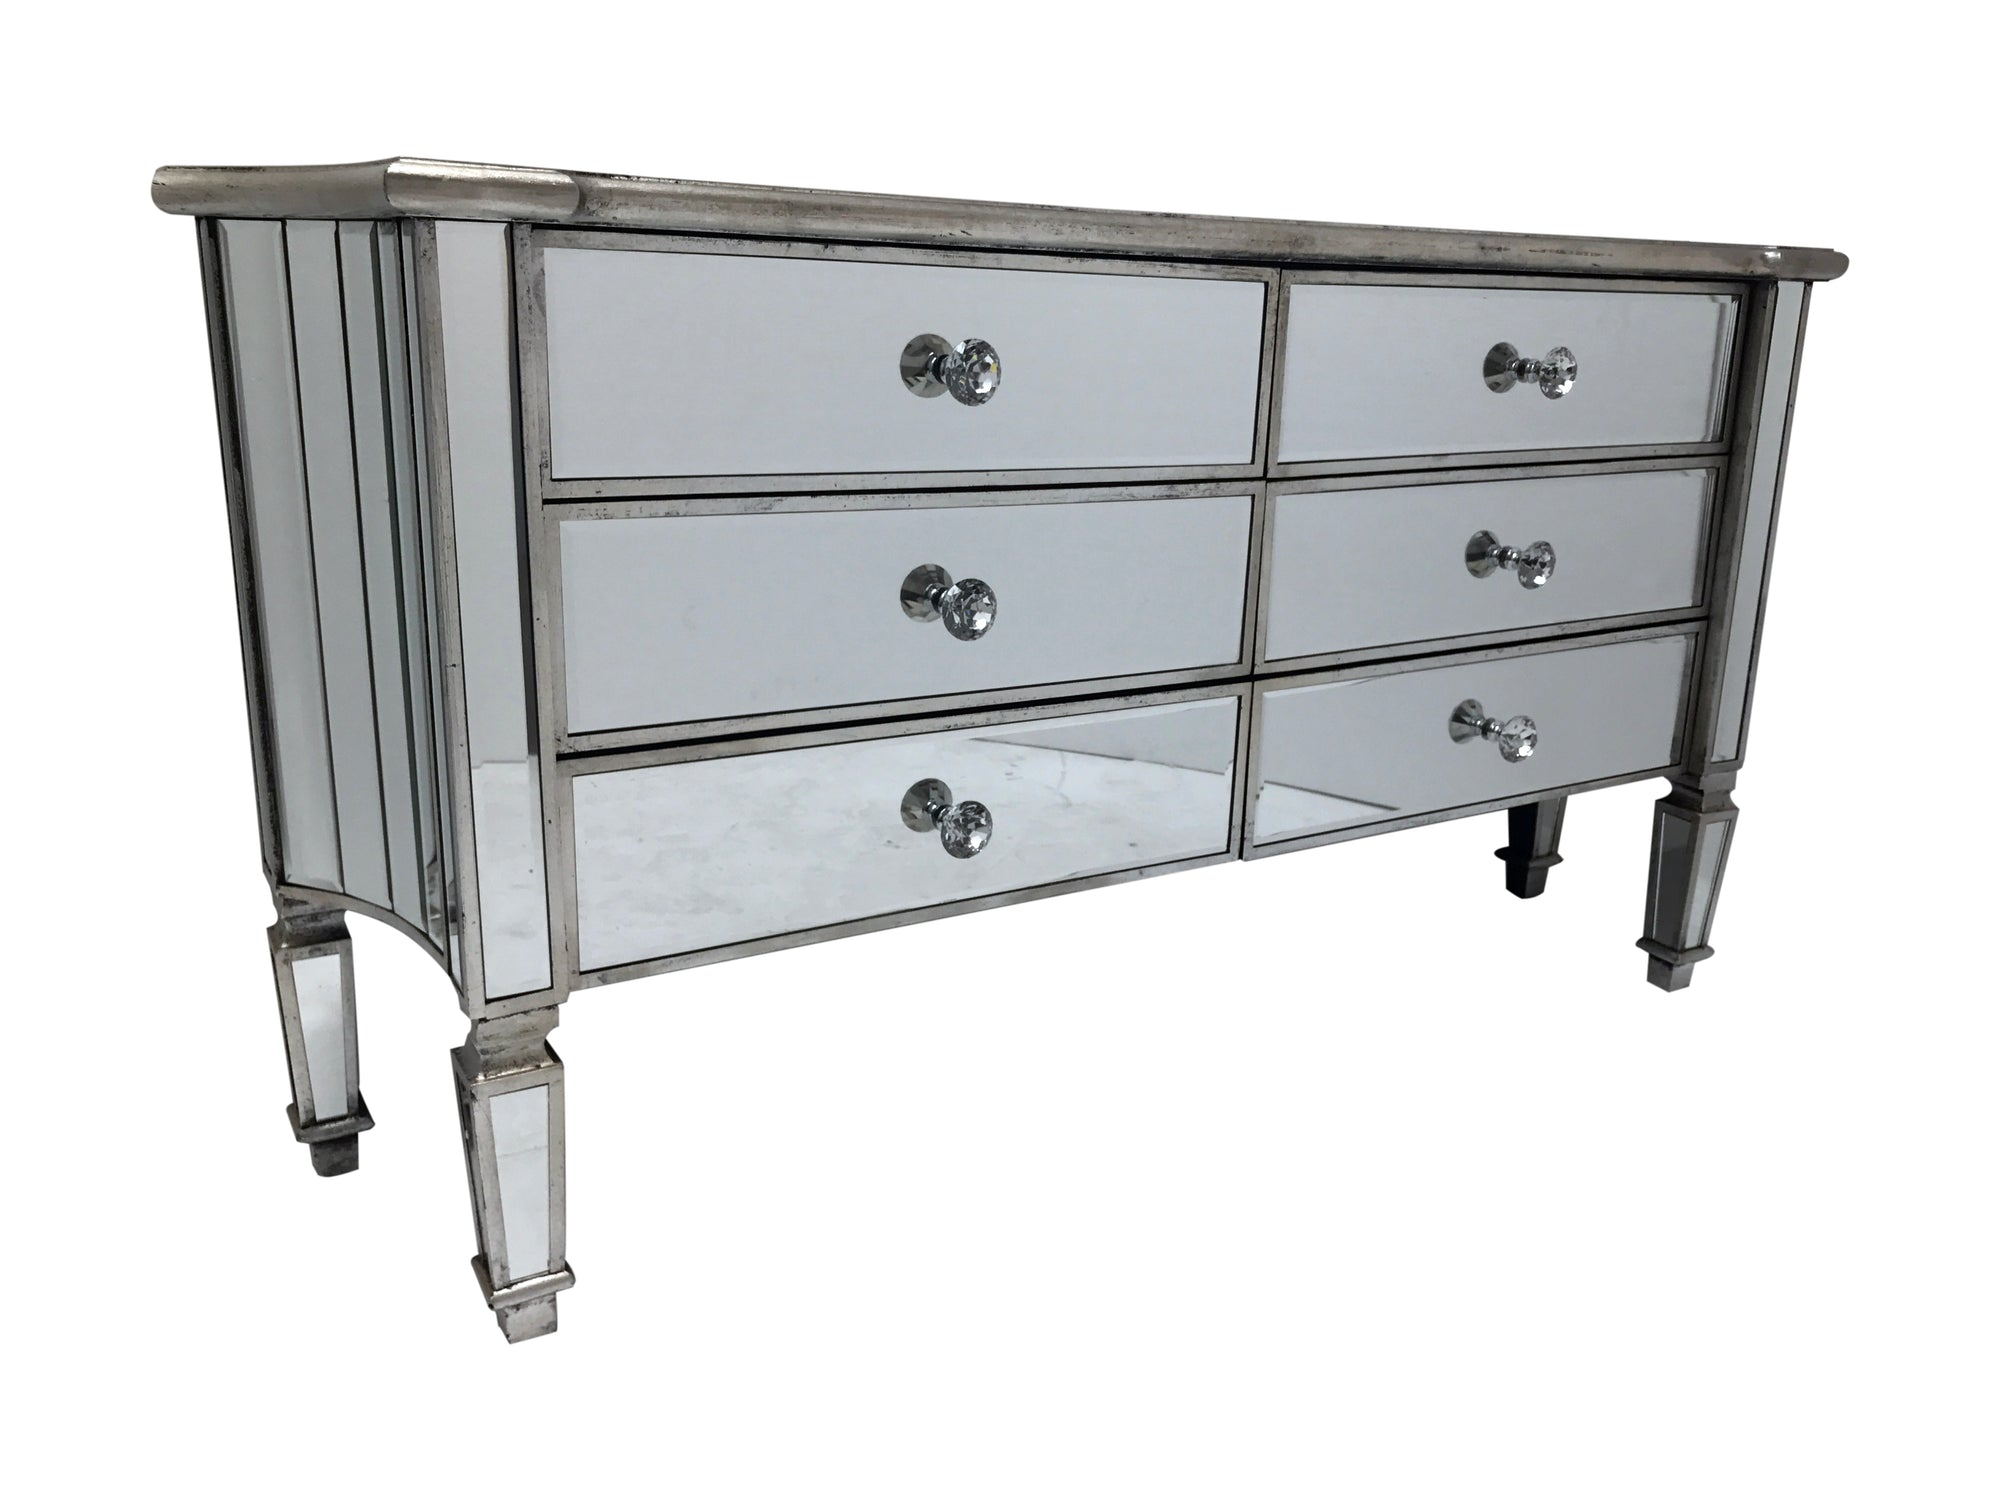 Mirrored Sideboard with 6 drawers, wood and mirror, crystal knobs, antique silver